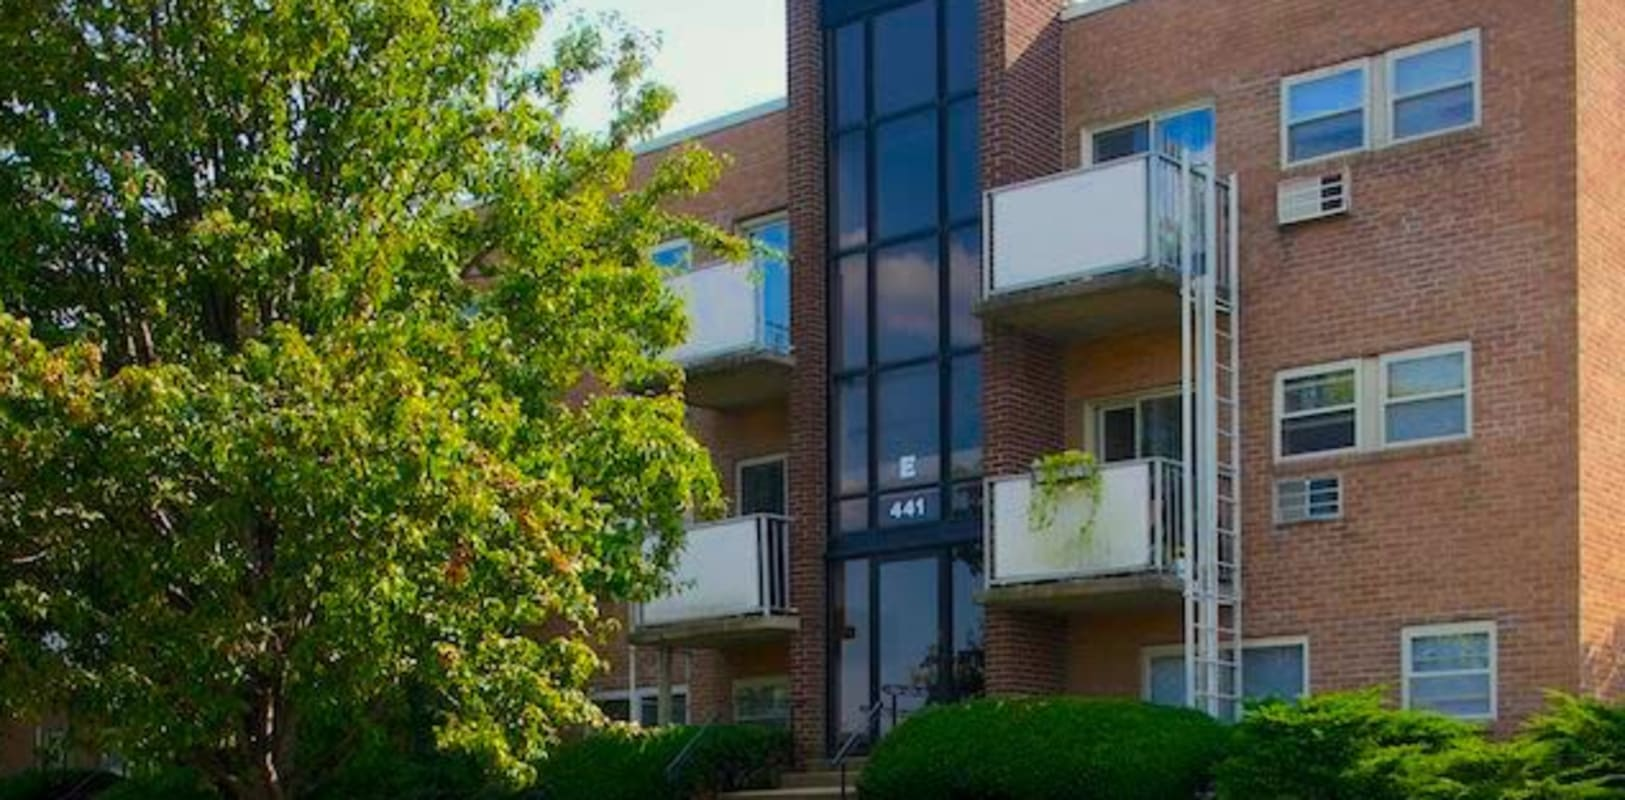 Exterior photo of a nice brick building at Marina Park Apartments in Collingswood, New Jersey